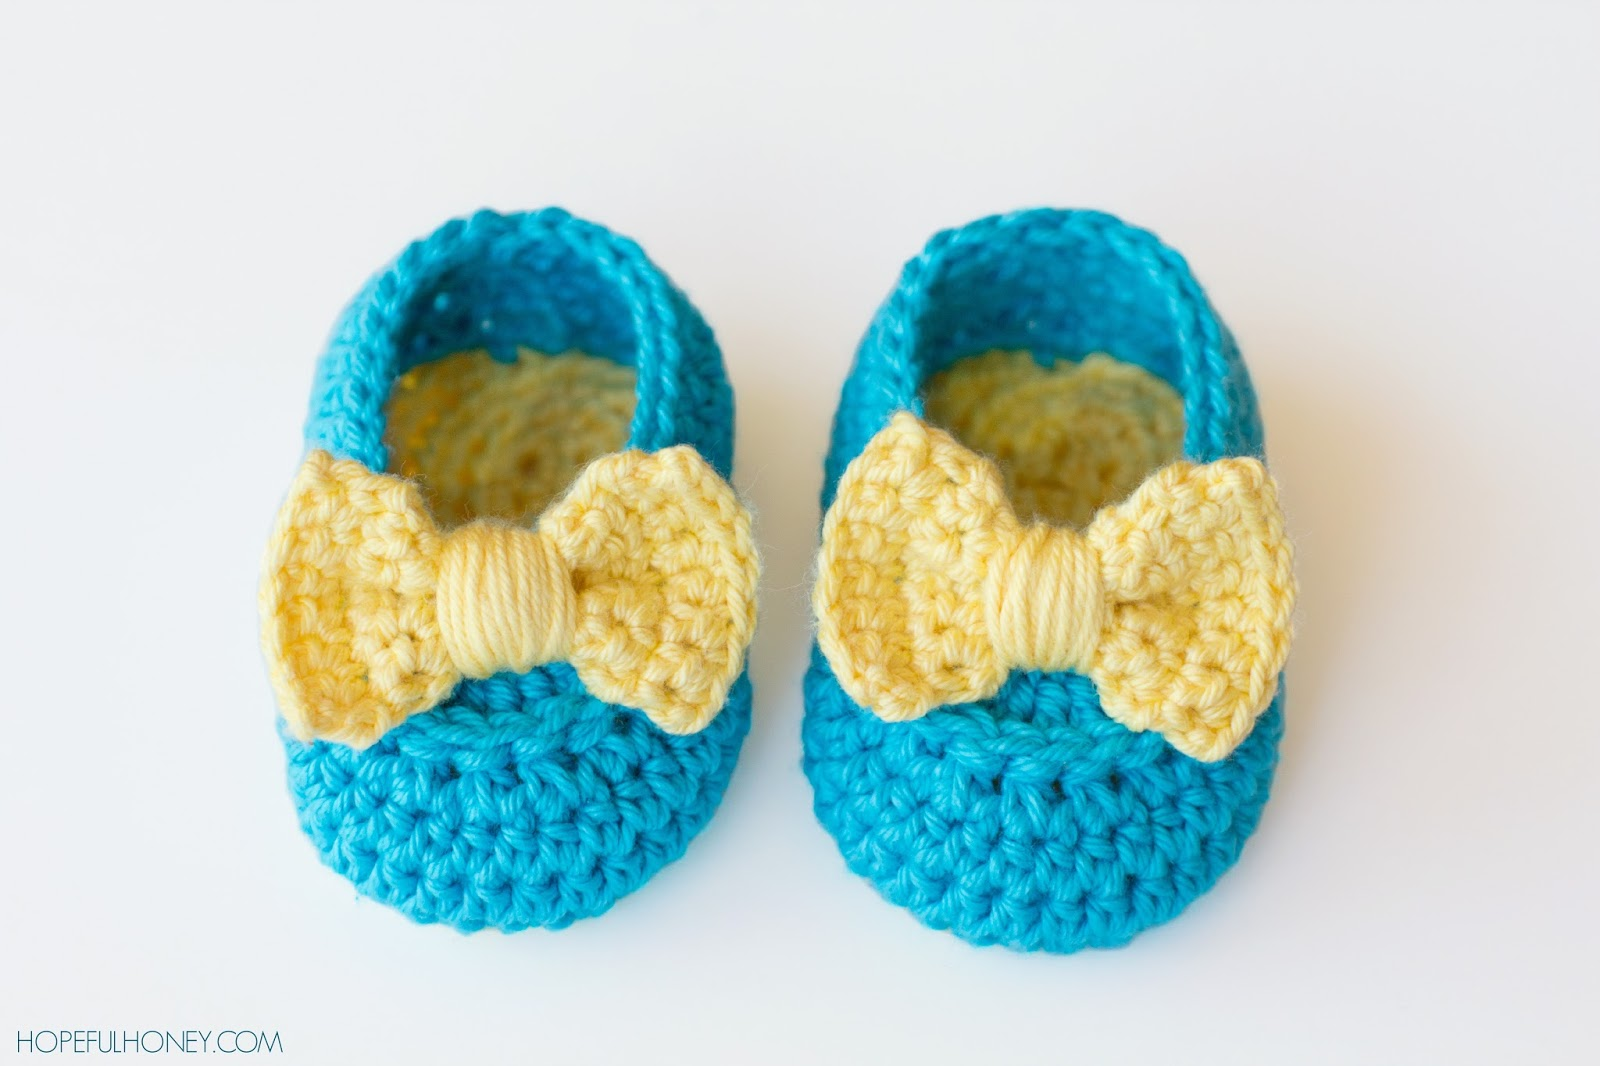 Crochet Baby Booties Pattern With Pictures : 25 Cutest Free Crochet Baby Bootie Patterns